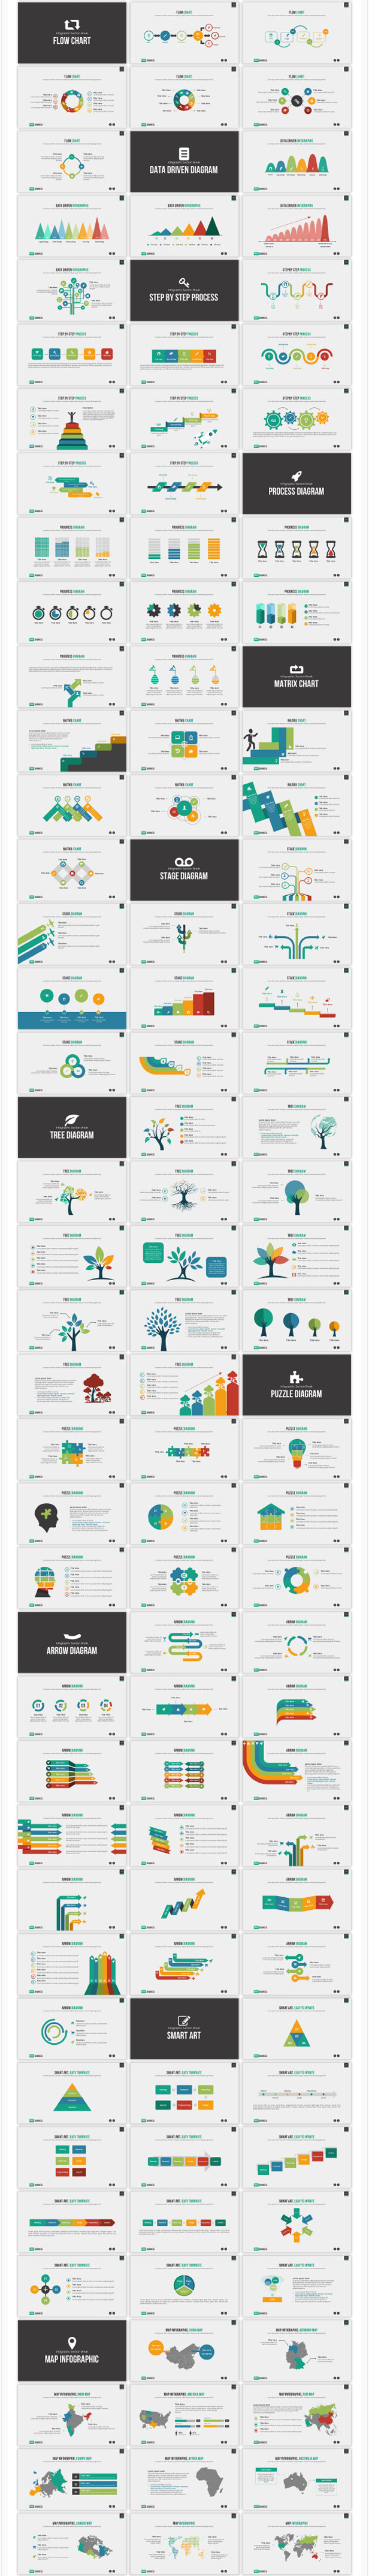 Trust Business PowerPoint Presentation Template - Best PowerPoint Presentation